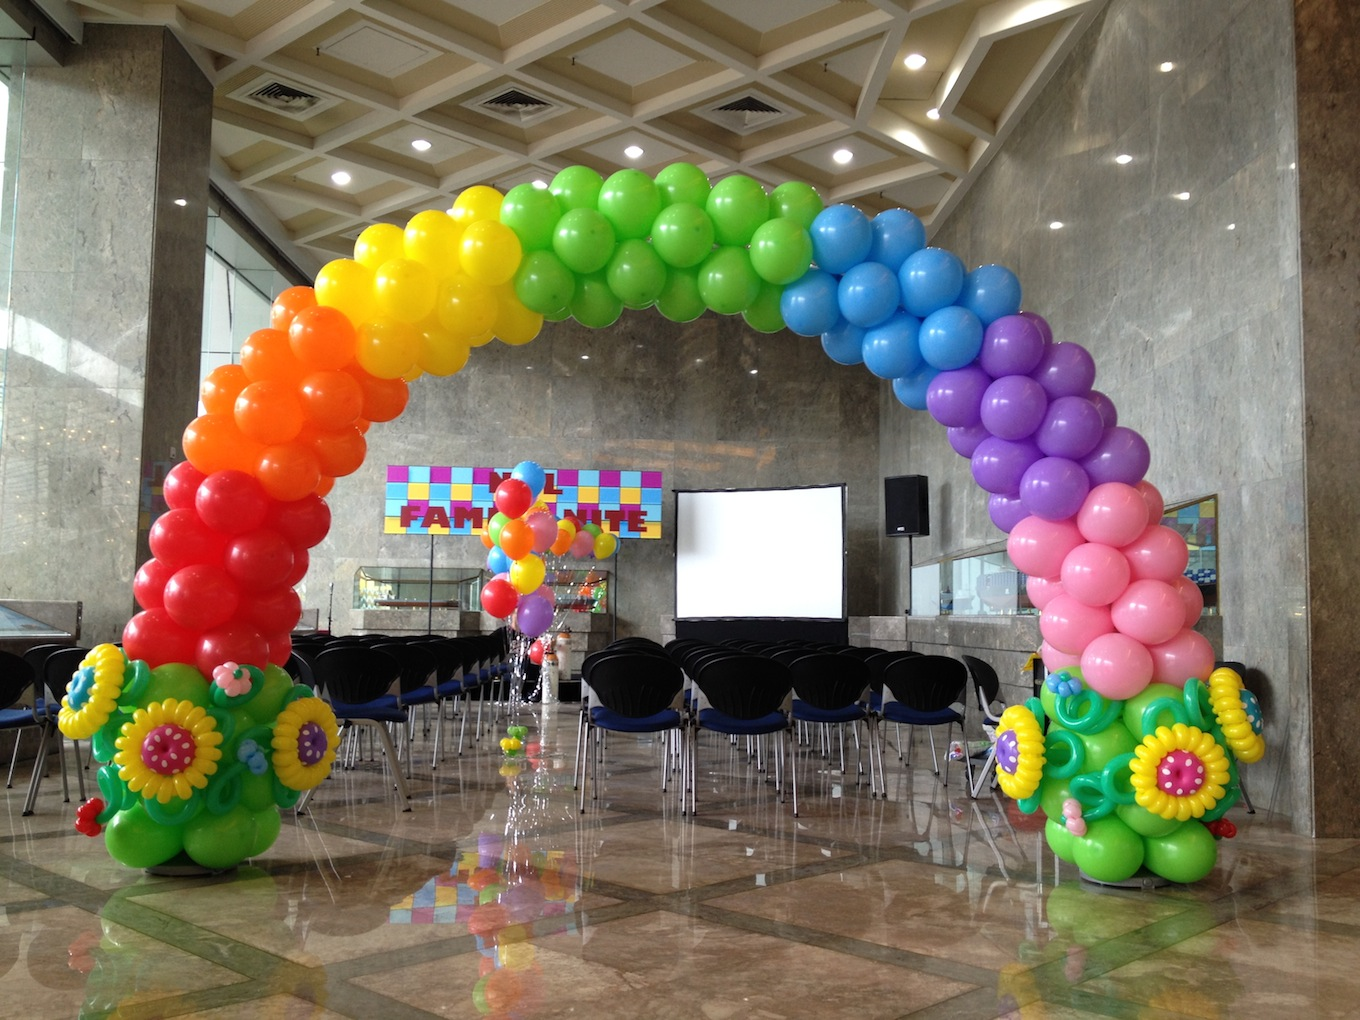 Balloon tunnel that balloons for Balloon decoration images party